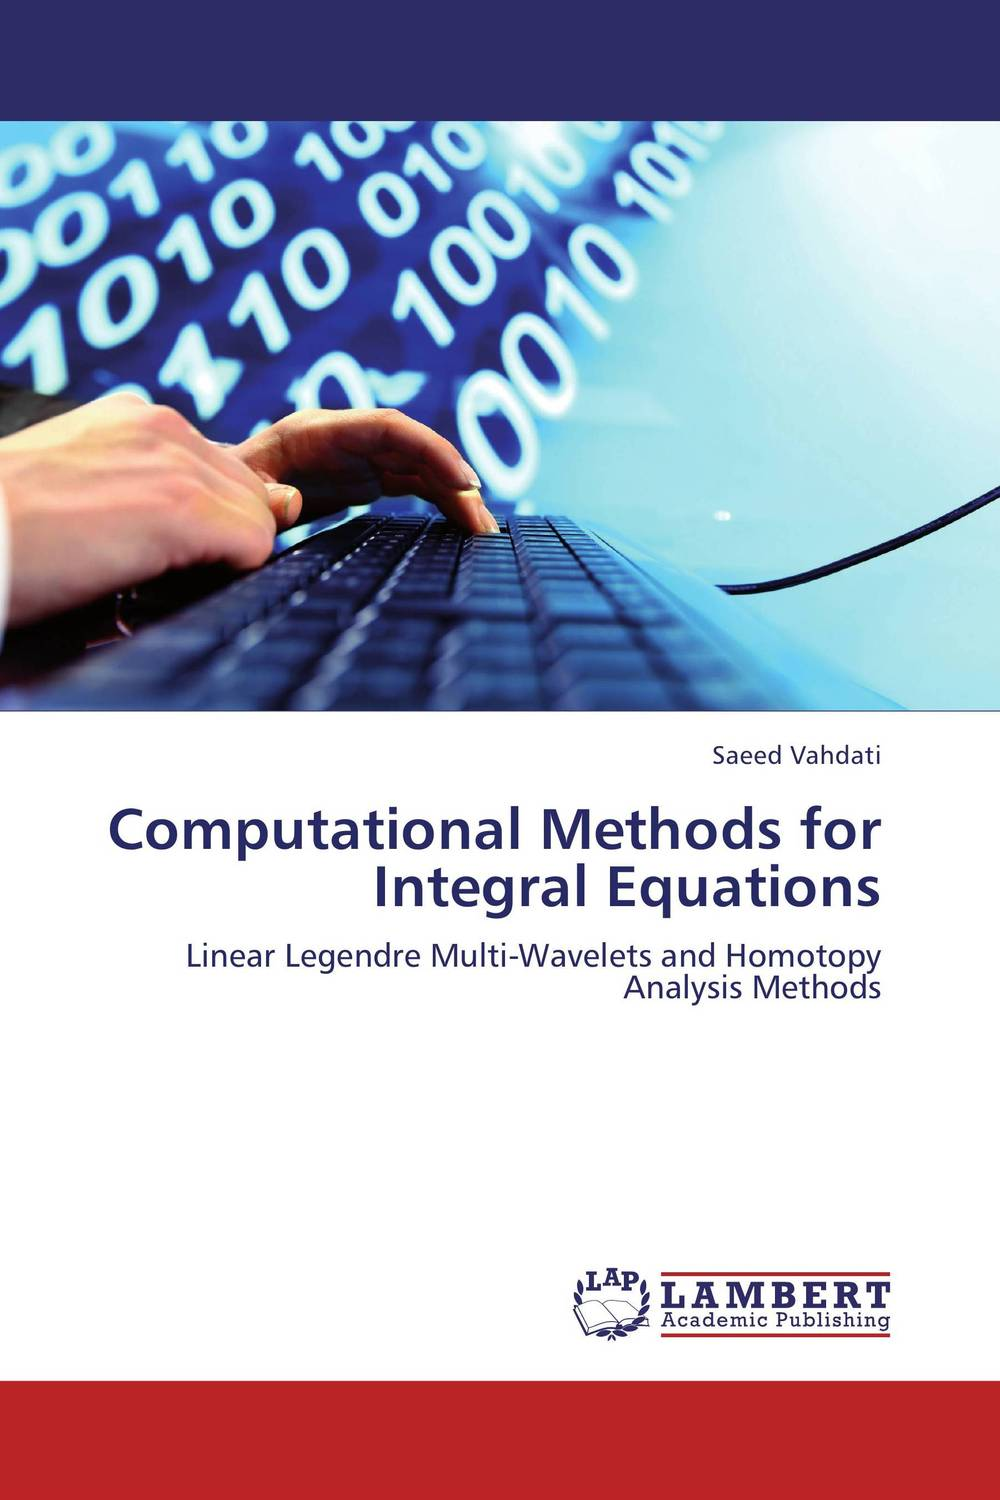 Computational Methods for Integral Equations belousov a security features of banknotes and other documents methods of authentication manual денежные билеты бланки ценных бумаг и документов